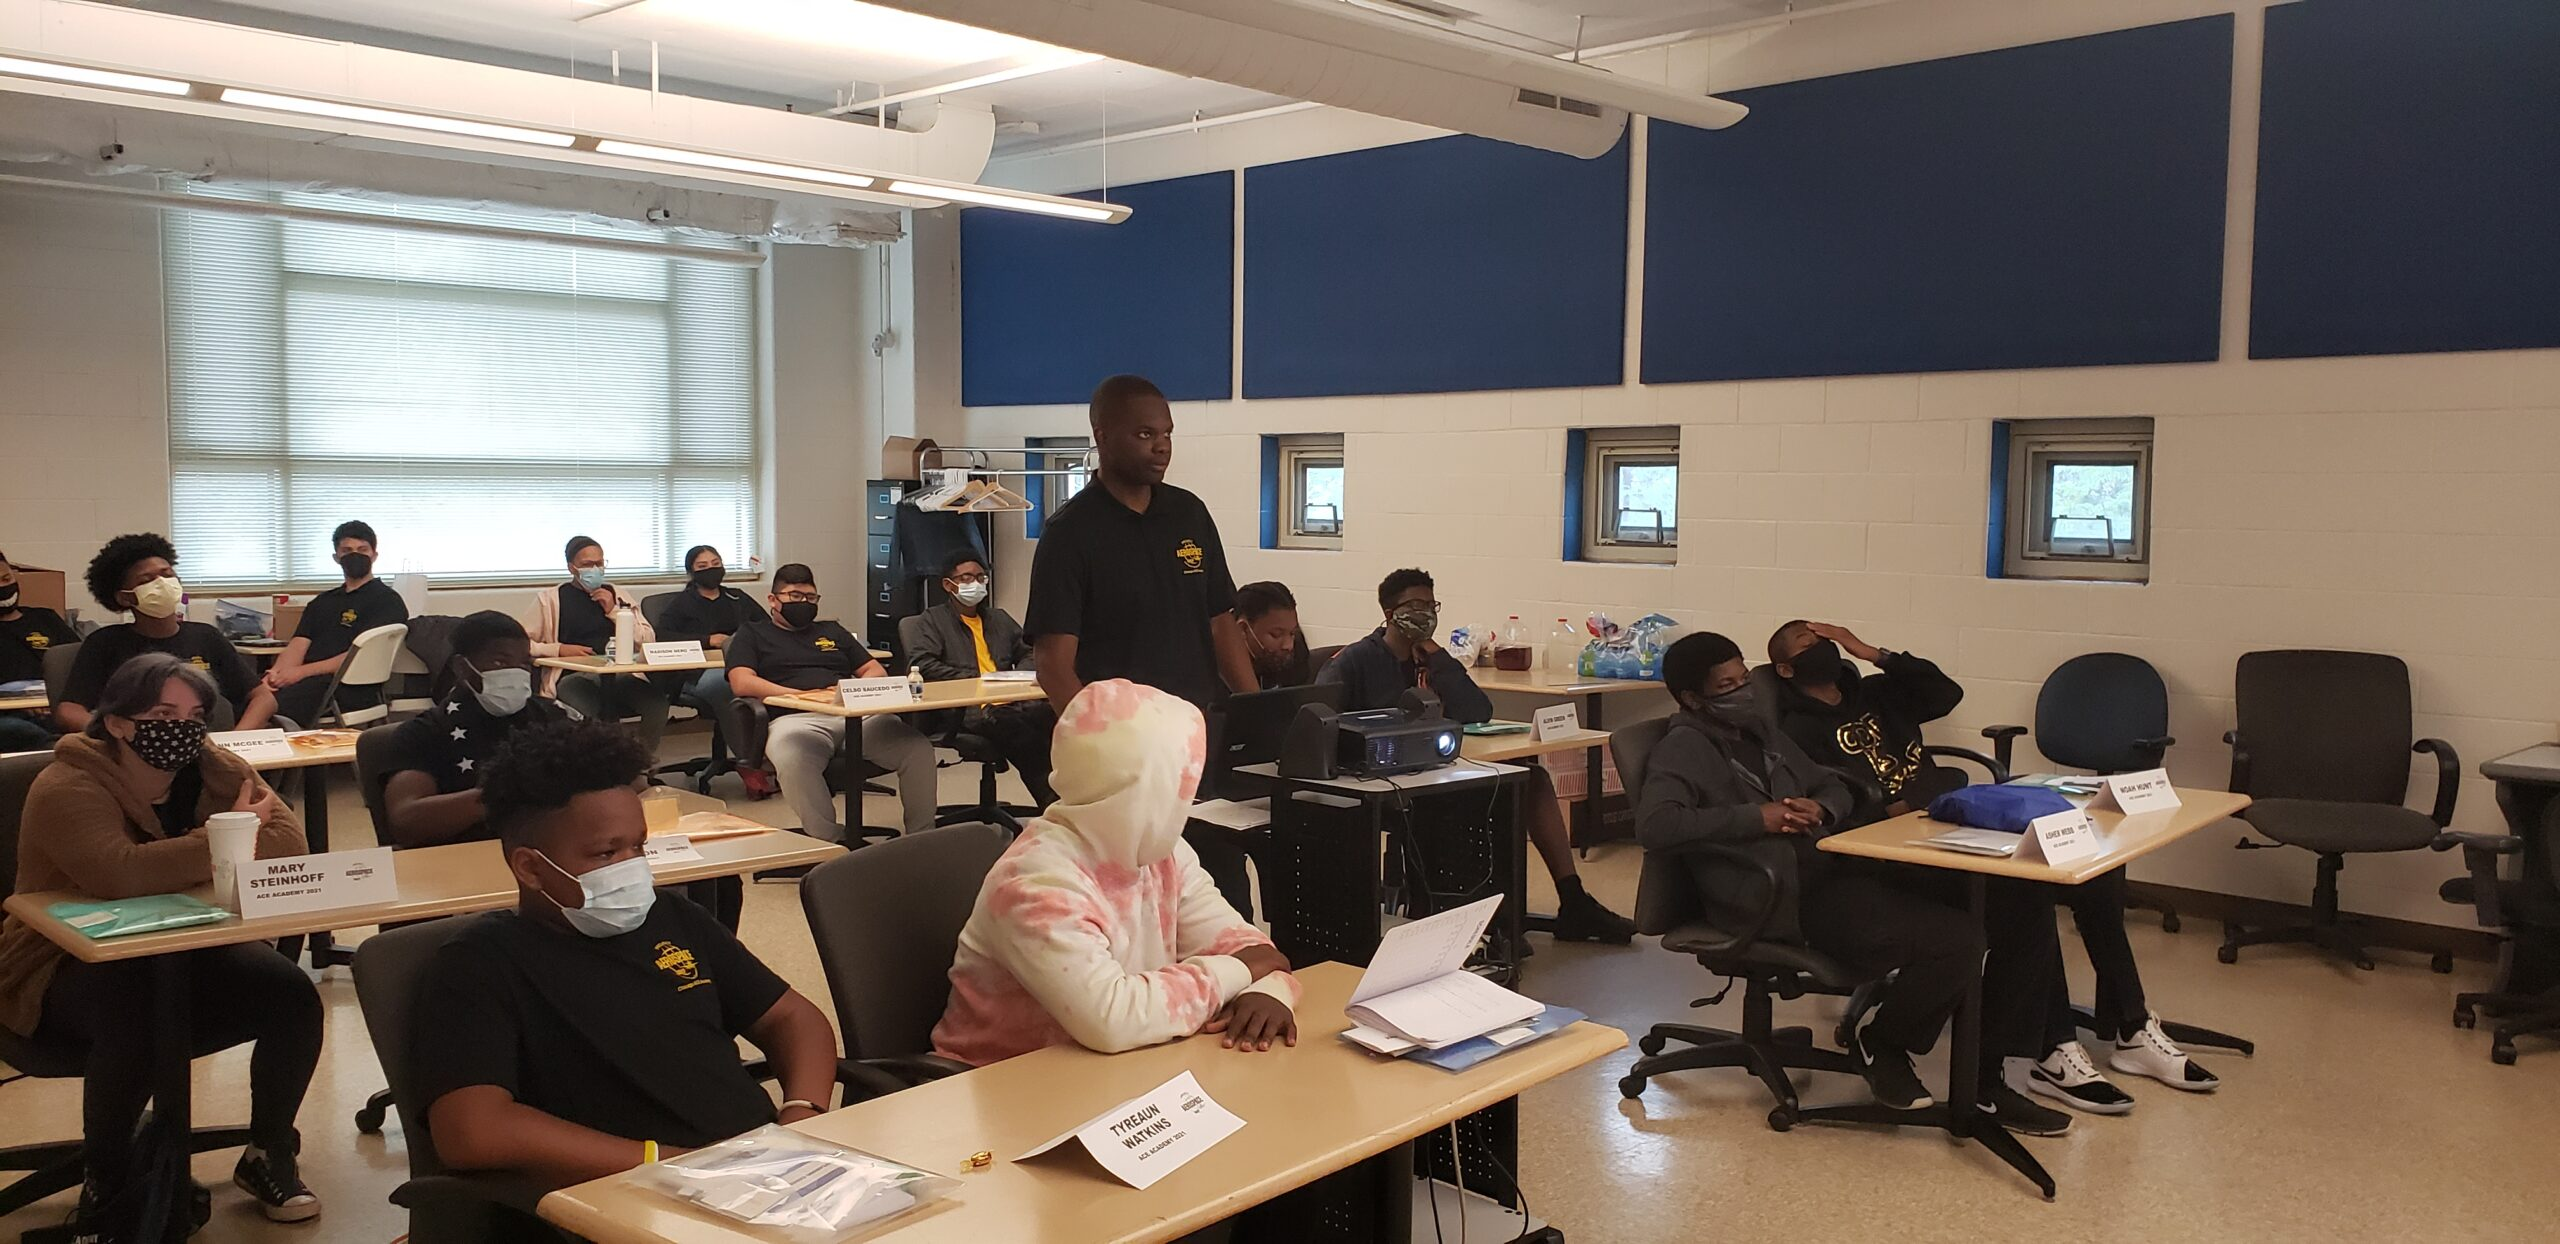 Chicago ACE academy classroom in 2021.